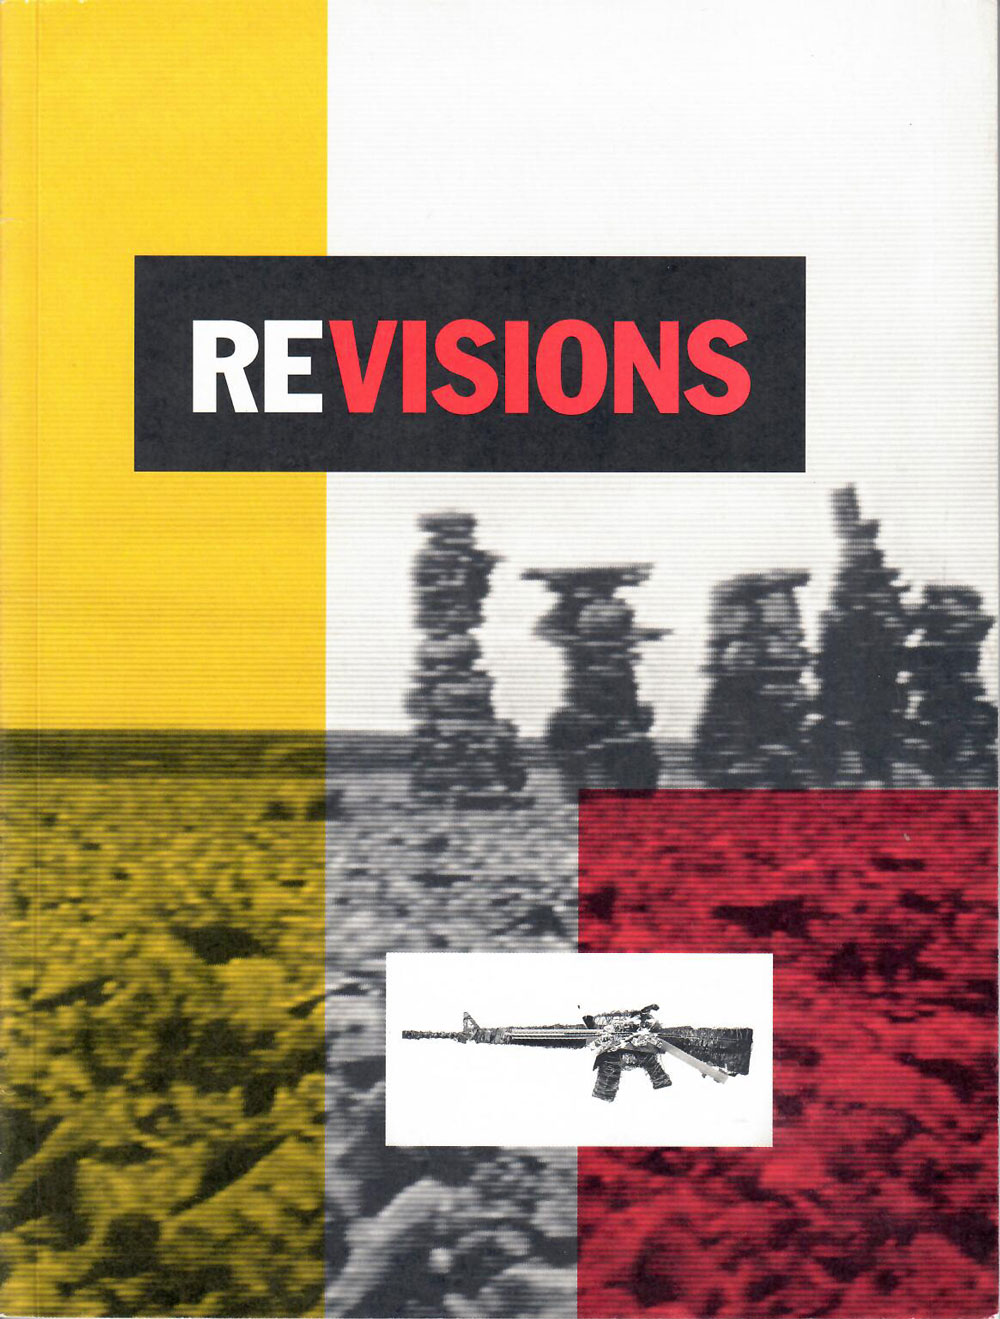 Revisions catalogue cover